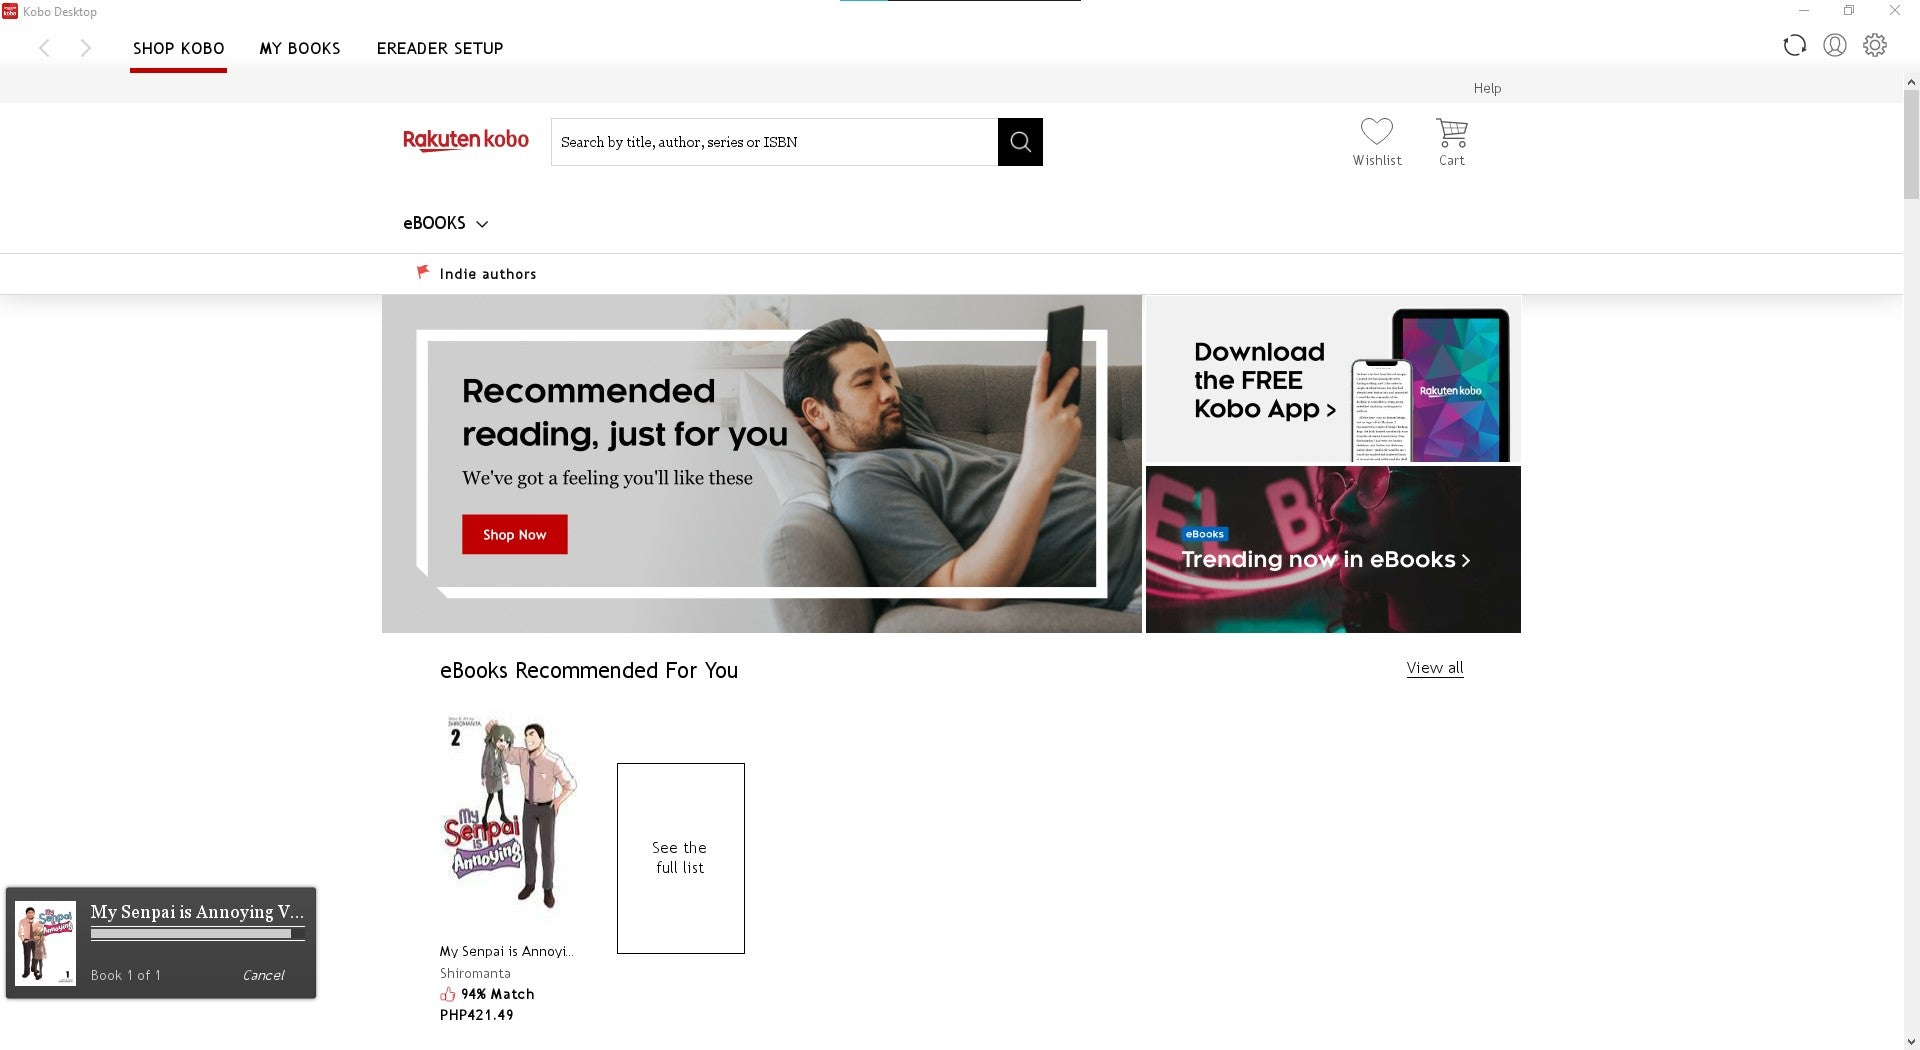 Your recently bought eBook syncing with the Kobo app